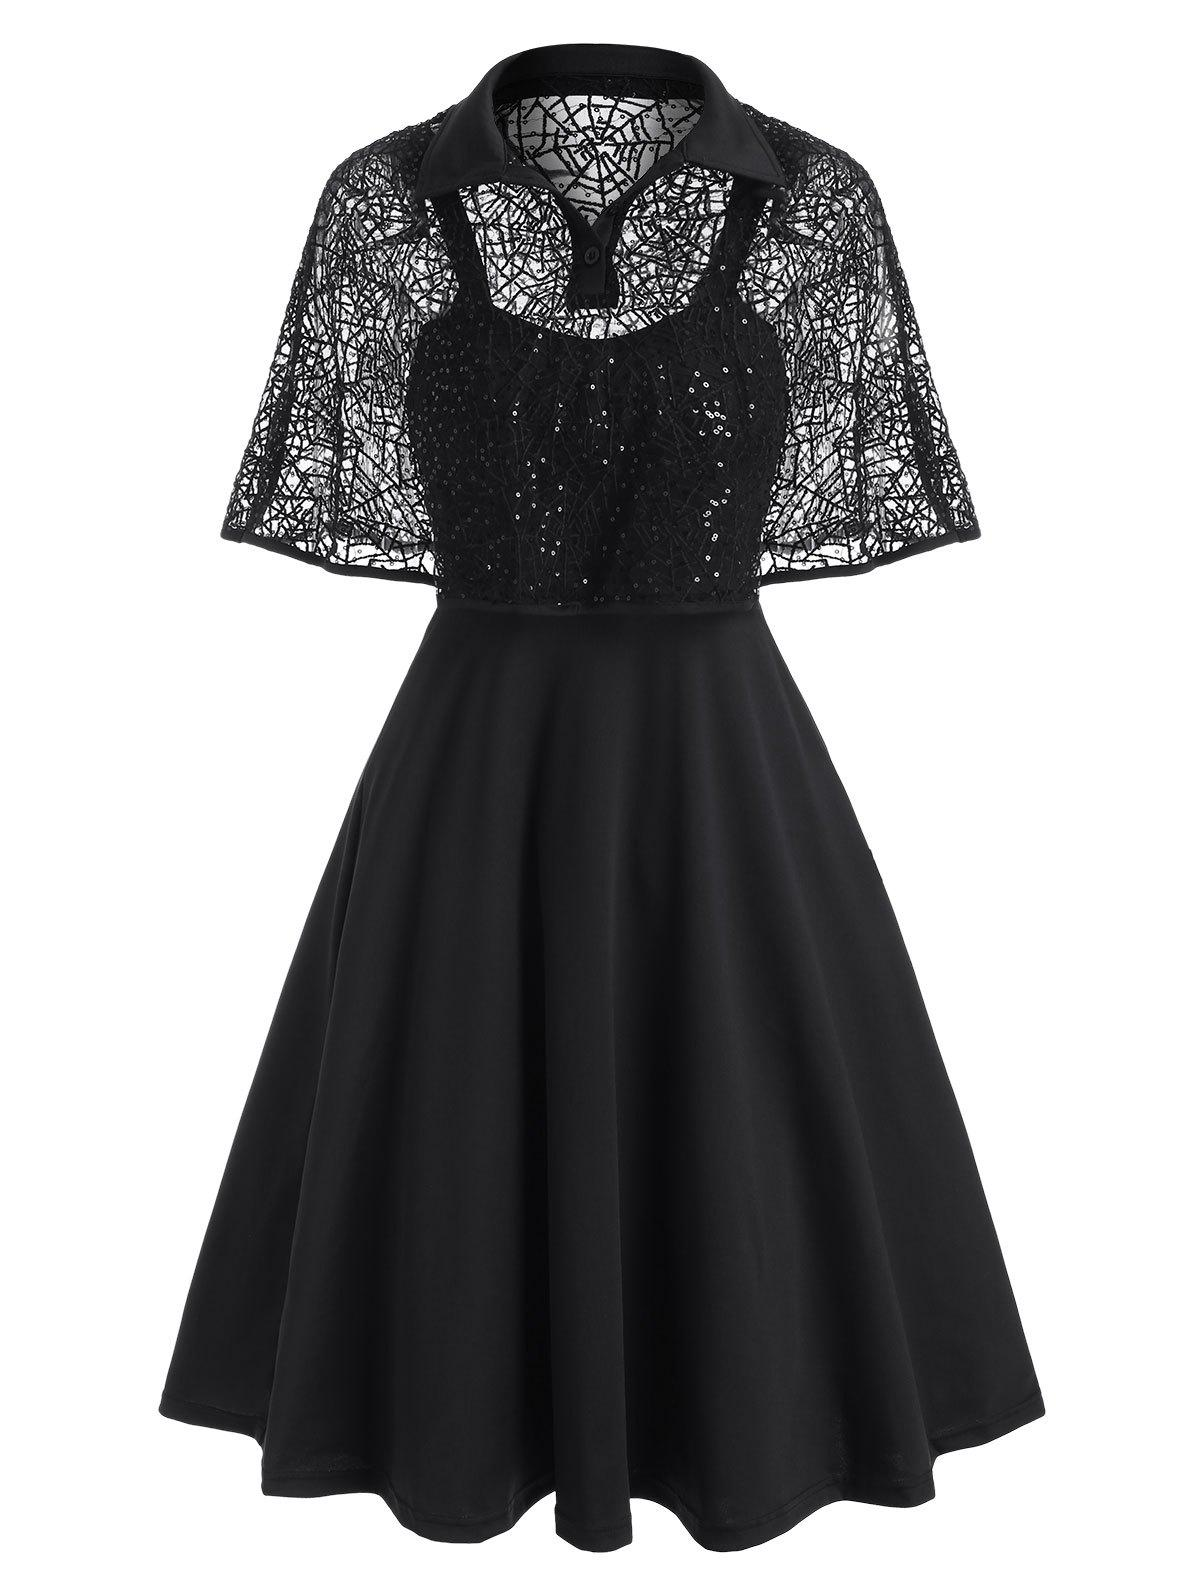 Online Halloween Sequined Lace Spider Web Cape Dress